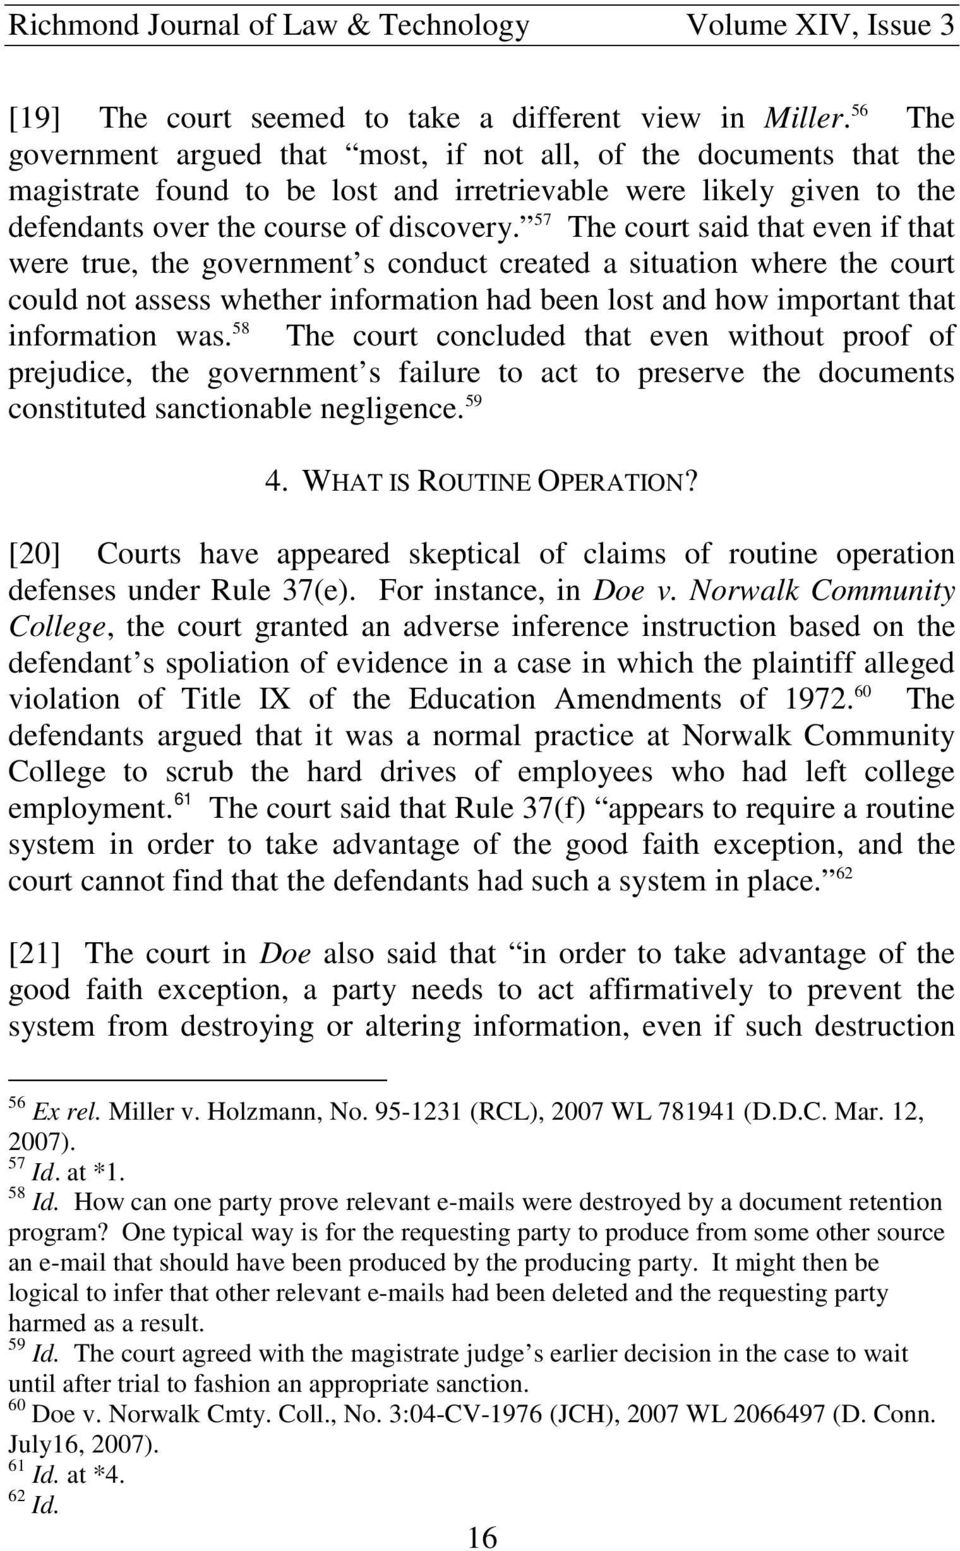 57 The court said that even if that were true, the government s conduct created a situation where the court could not assess whether information had been lost and how important that information was.